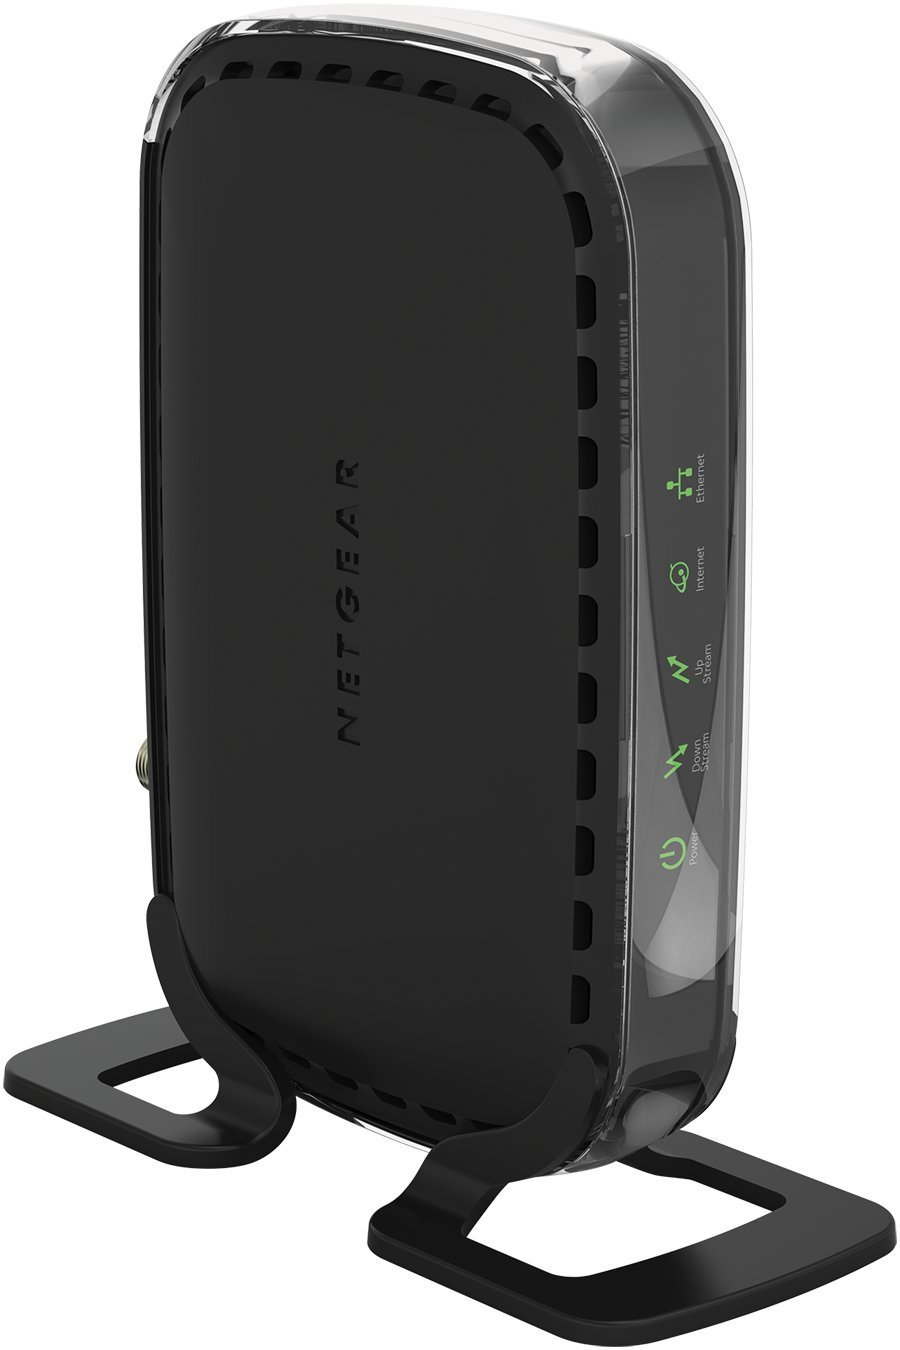 From The Wirecutter: The best cable modem (for most folks